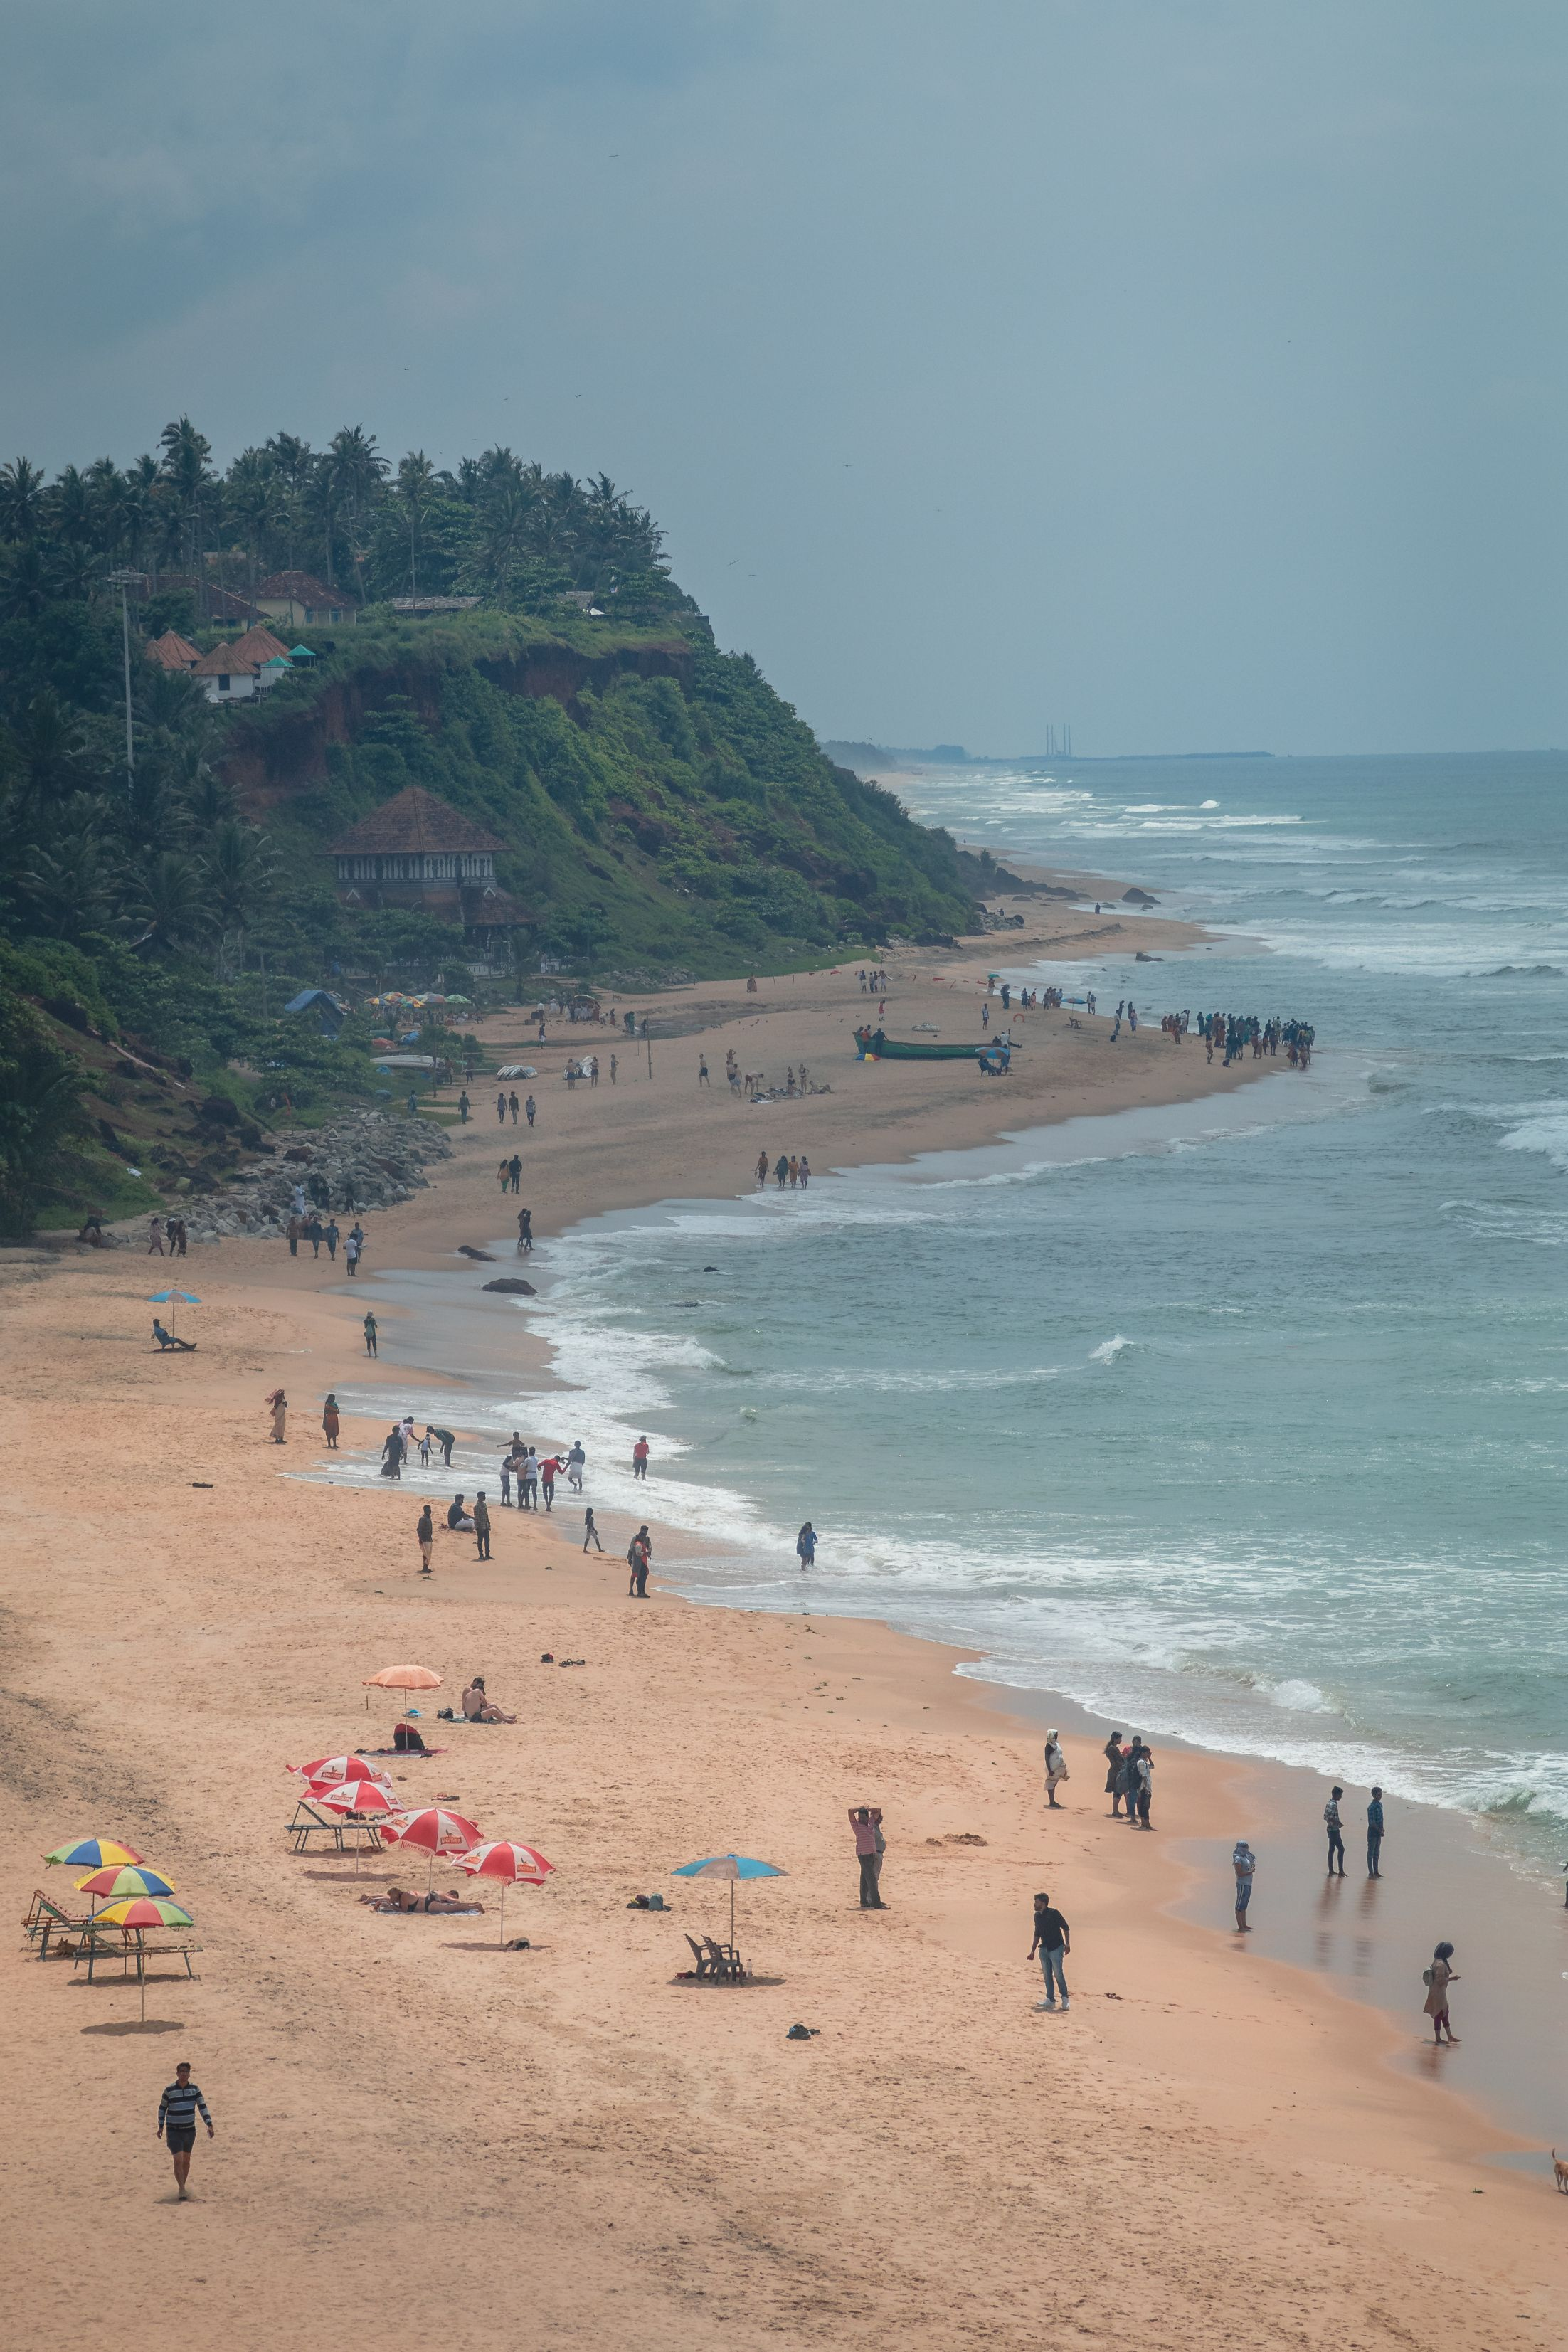 Varkala Cliff bird eye view, drone shote beach